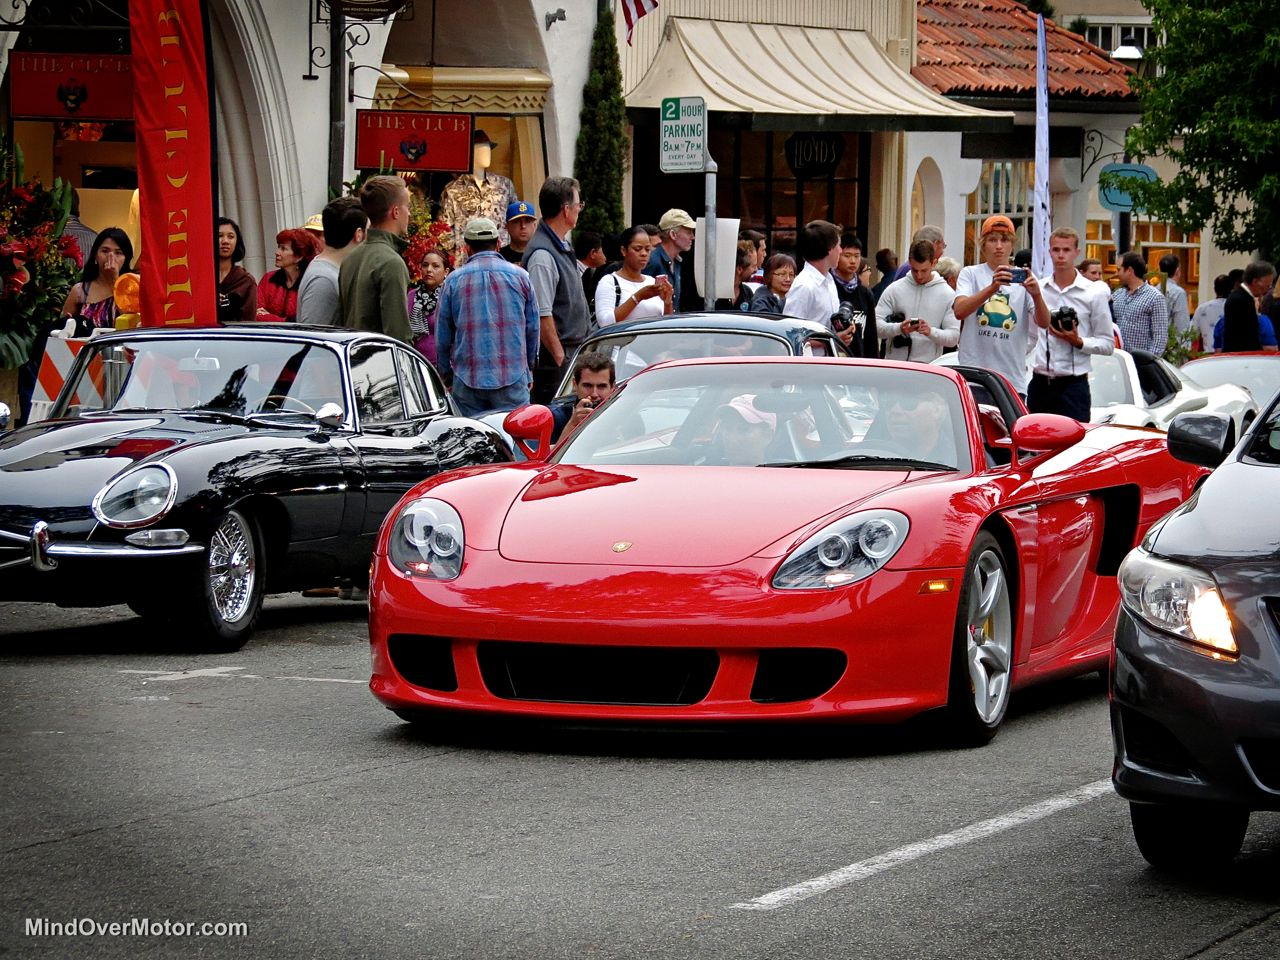 Red Porsche Carrera GT in Carmel front